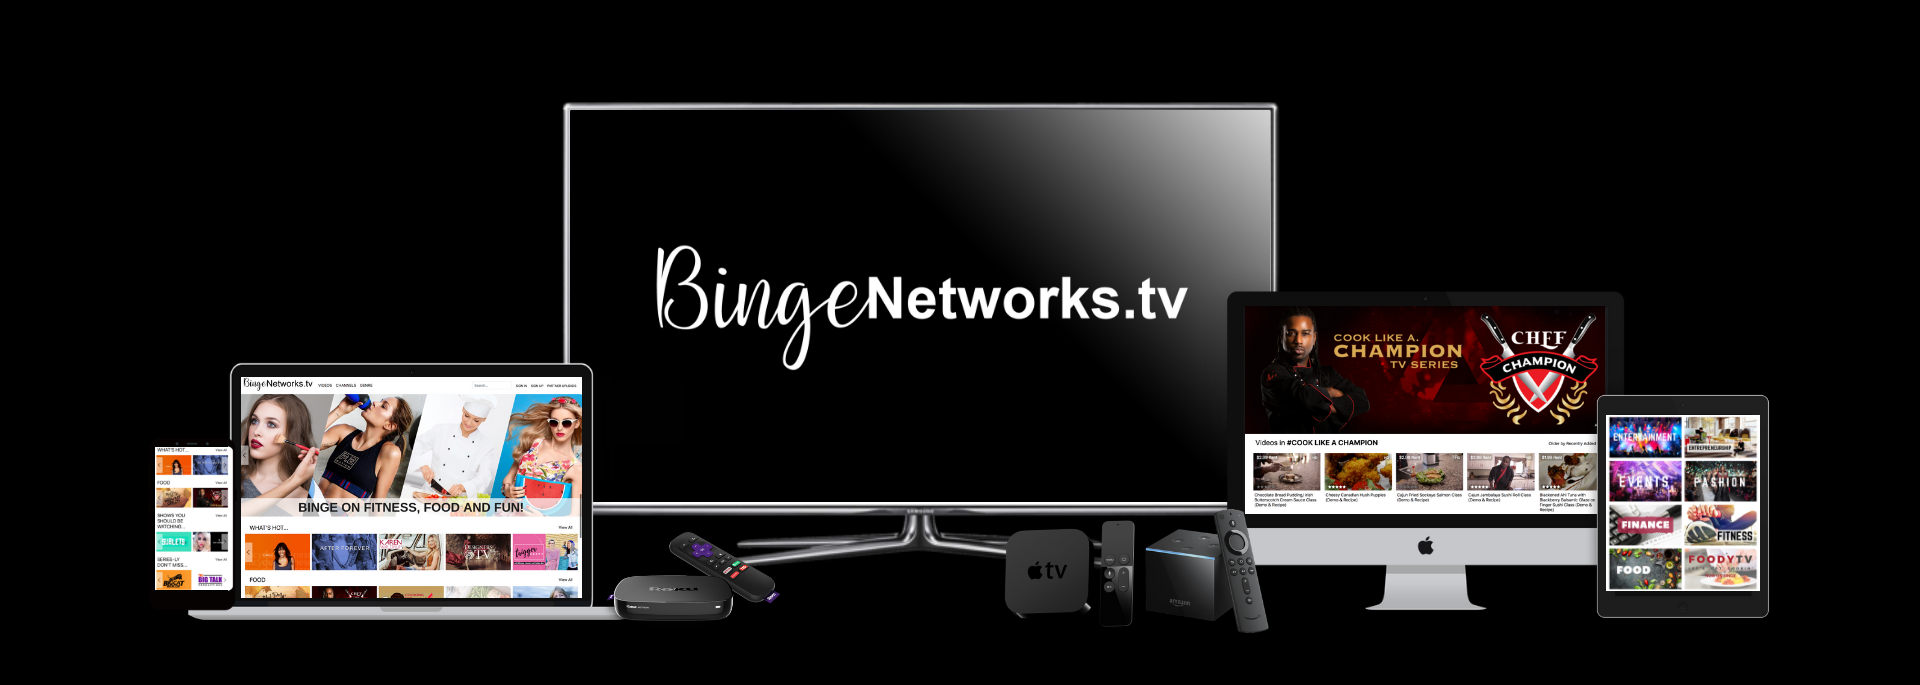 Video Content Distribution on over 50 Smart TVs Globally